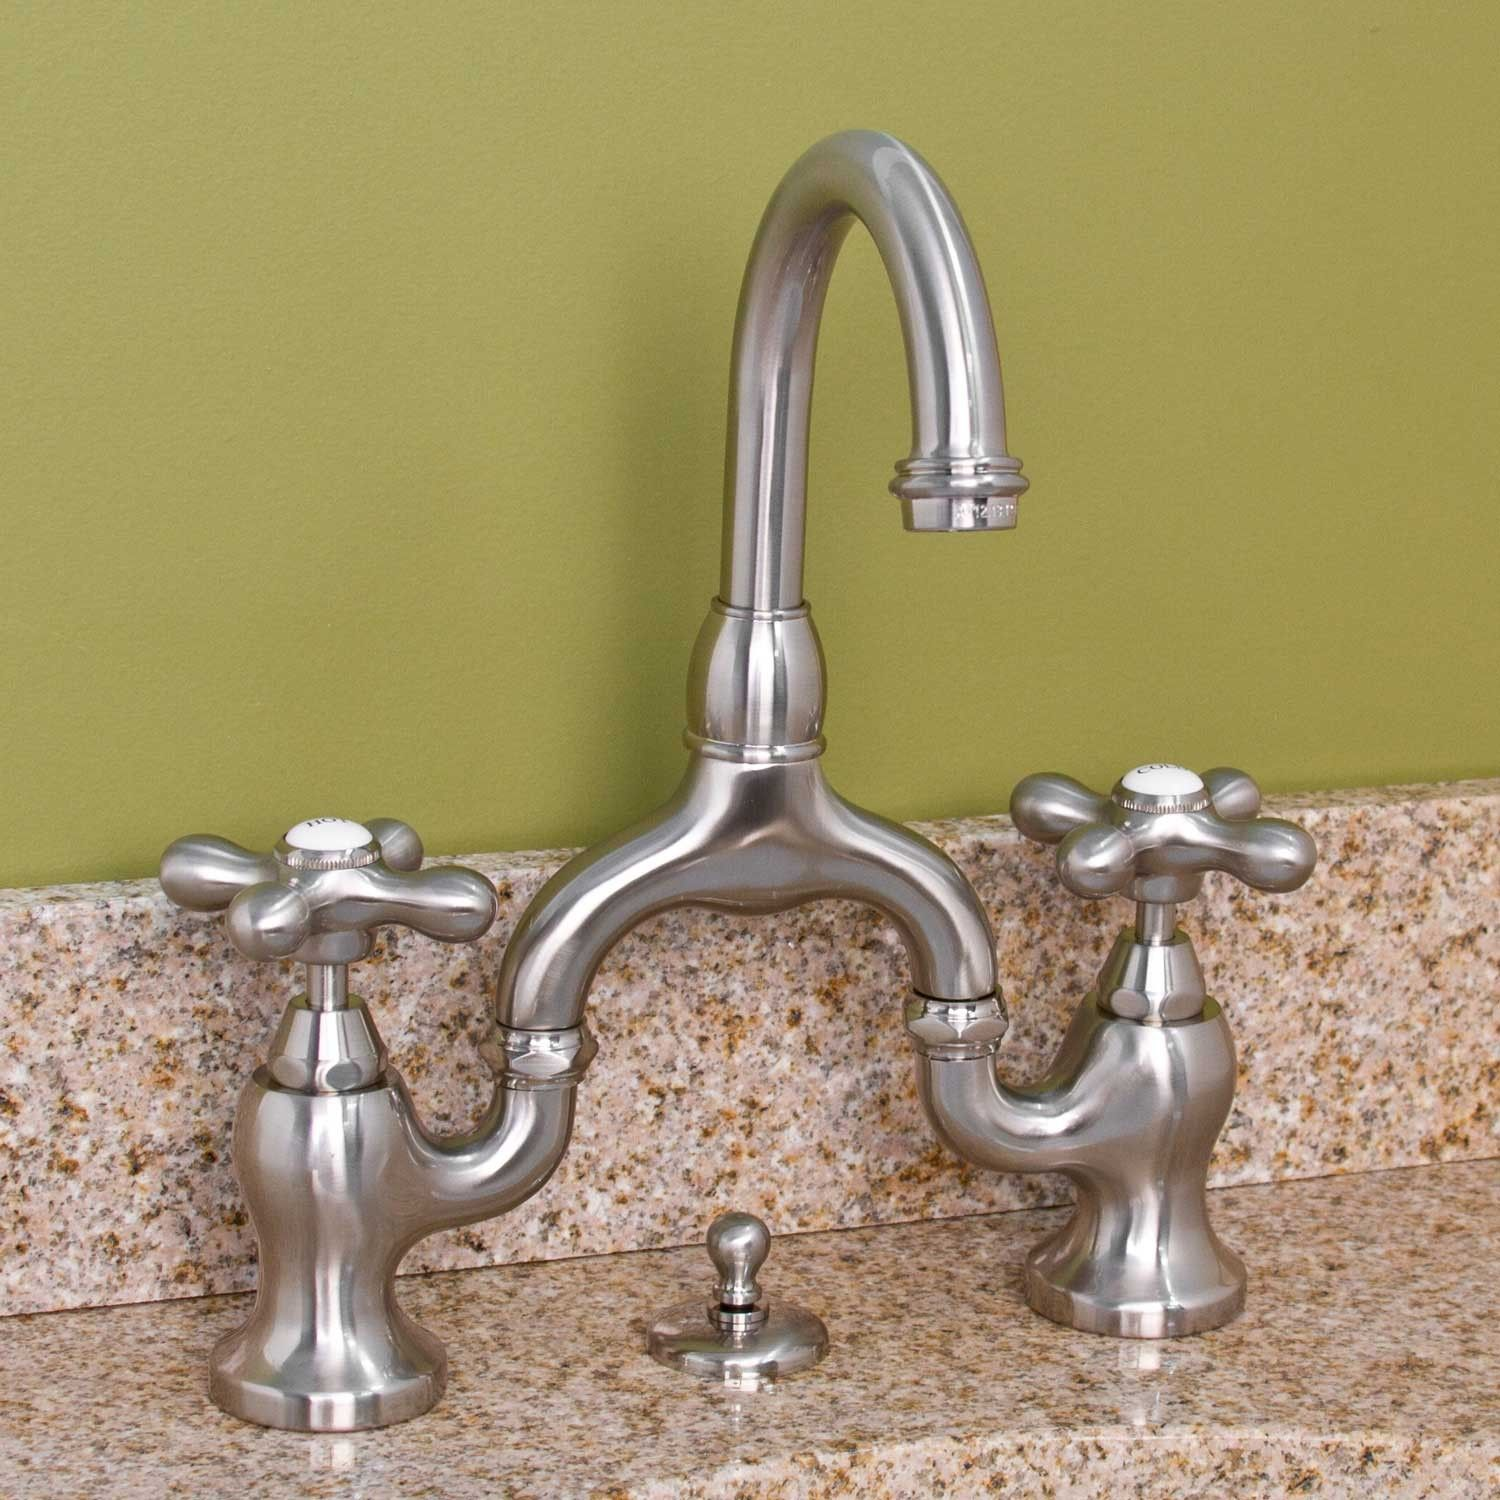 Ponticello Bridge Bathroom Faucet with Large Metal Cross Handles - Bathroom Sink Faucets - Bathroom